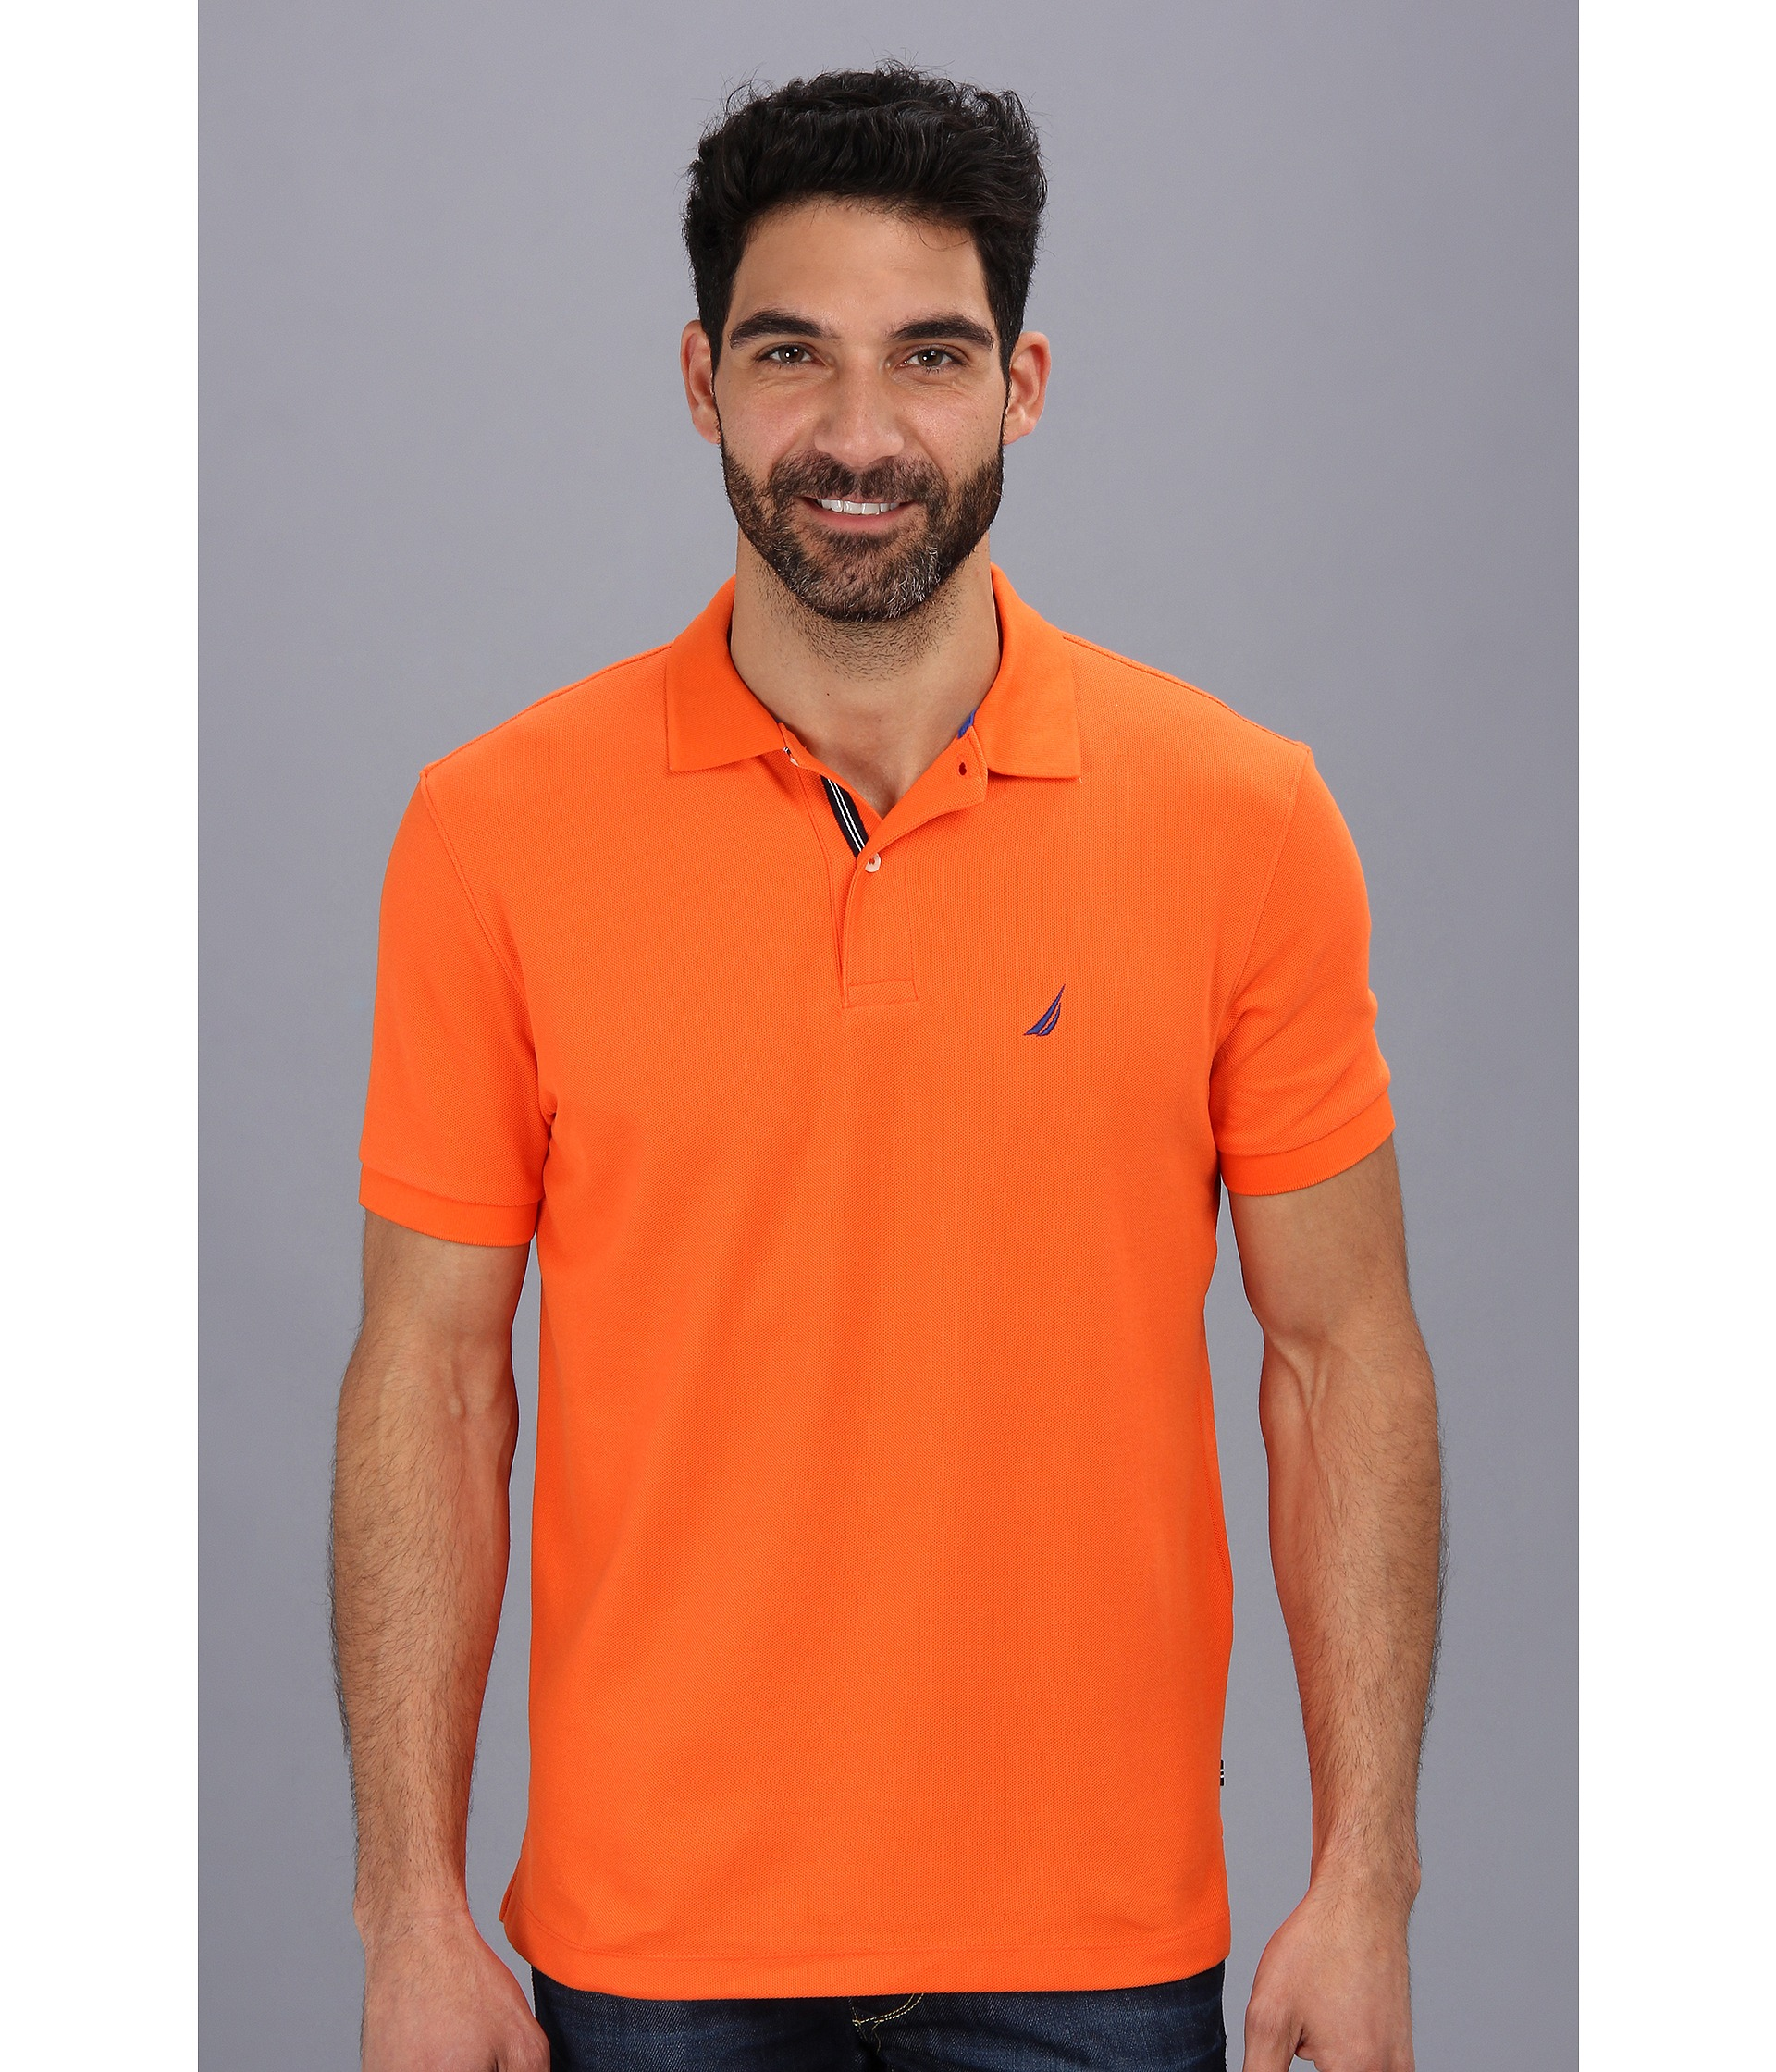 nautica polo shirts clearance